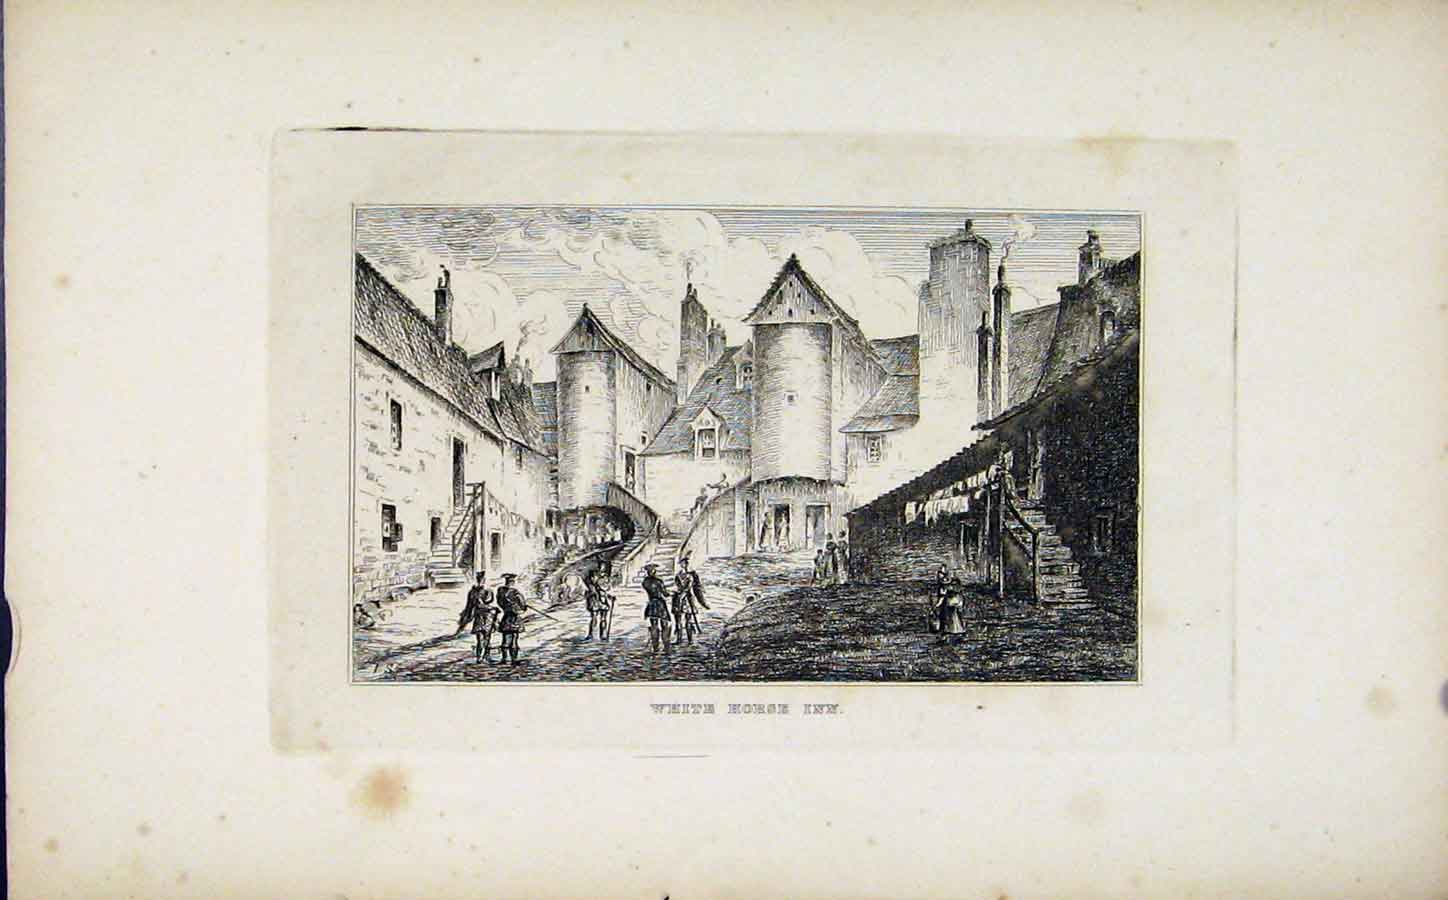 Print White Horse Inn Etching C1830 Fine Art 218191 Old Original